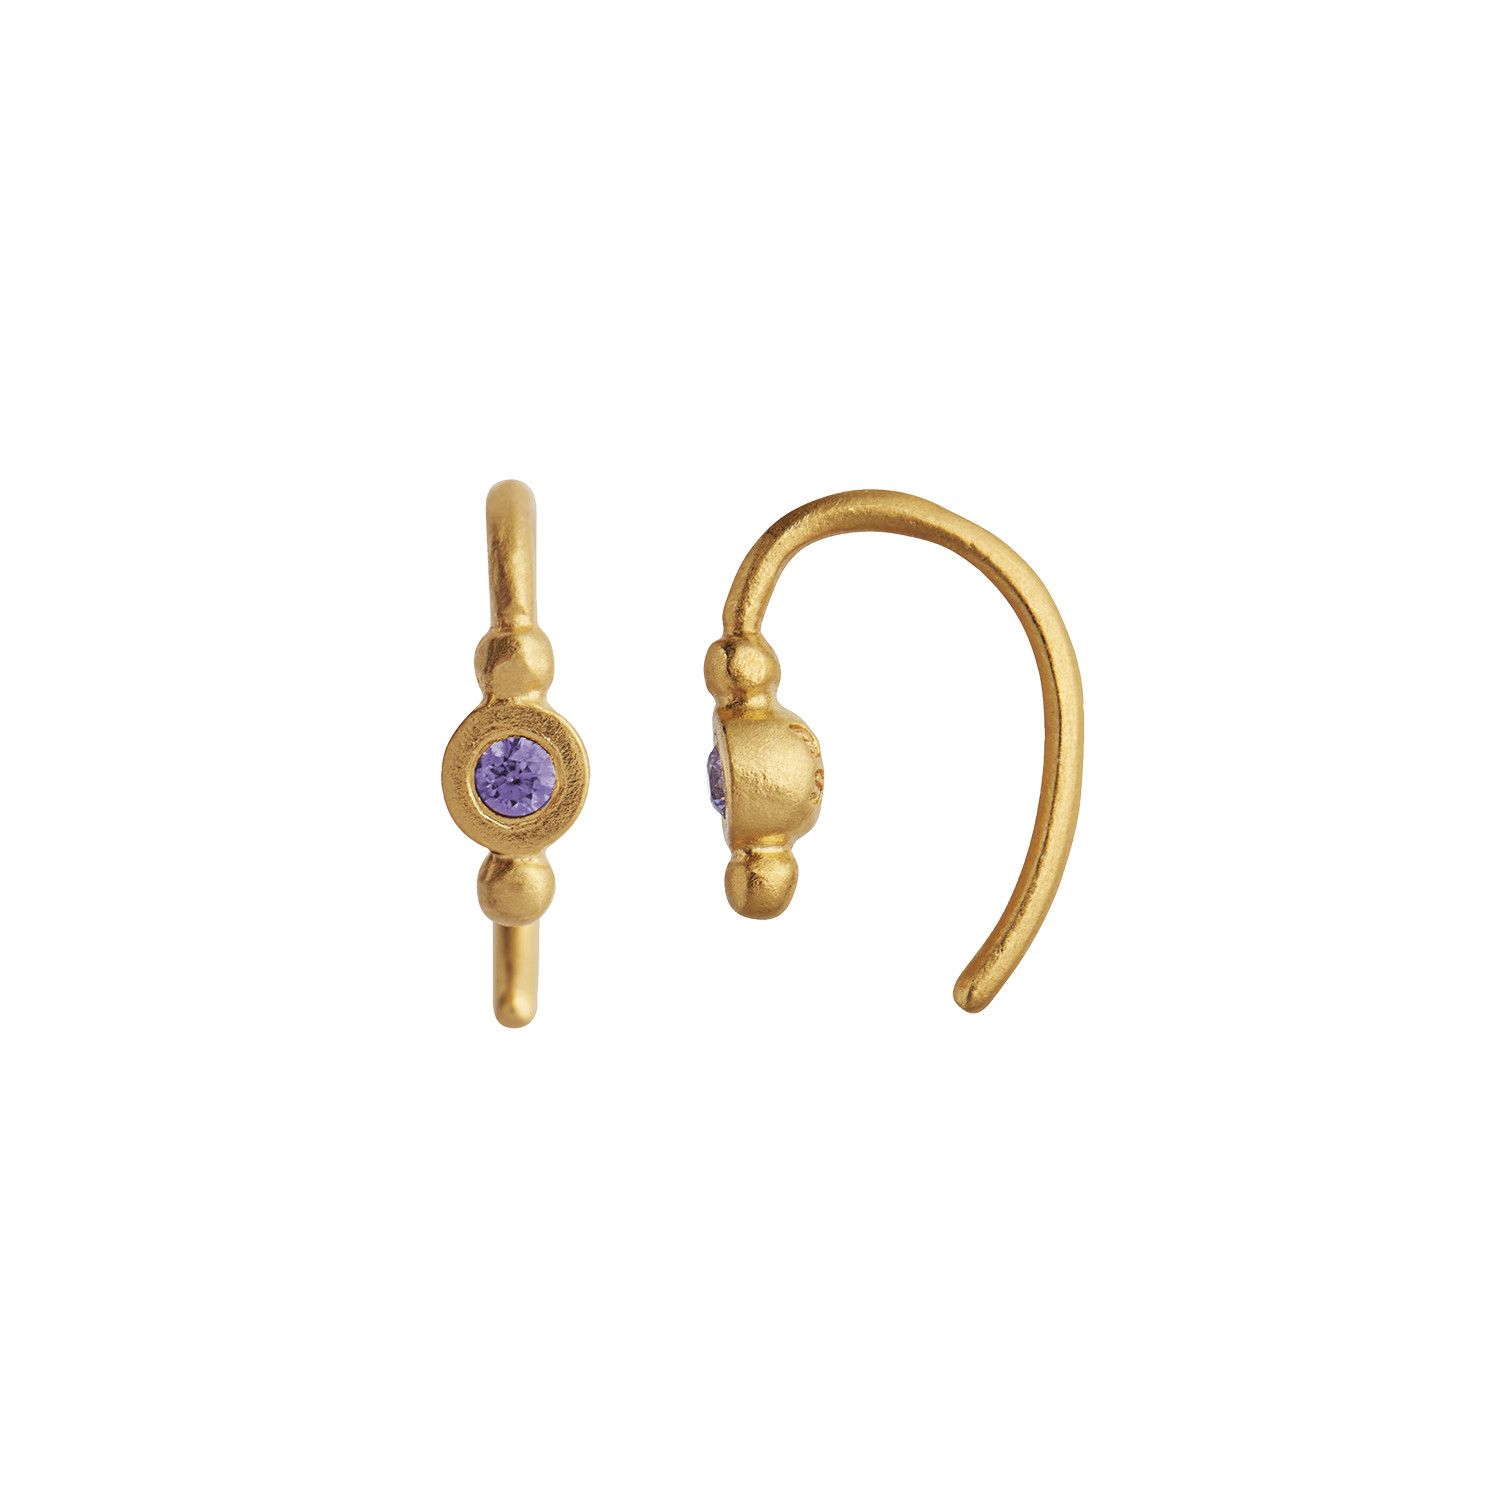 Petit Bon-bon Purple Zircon Earring Piece Gold